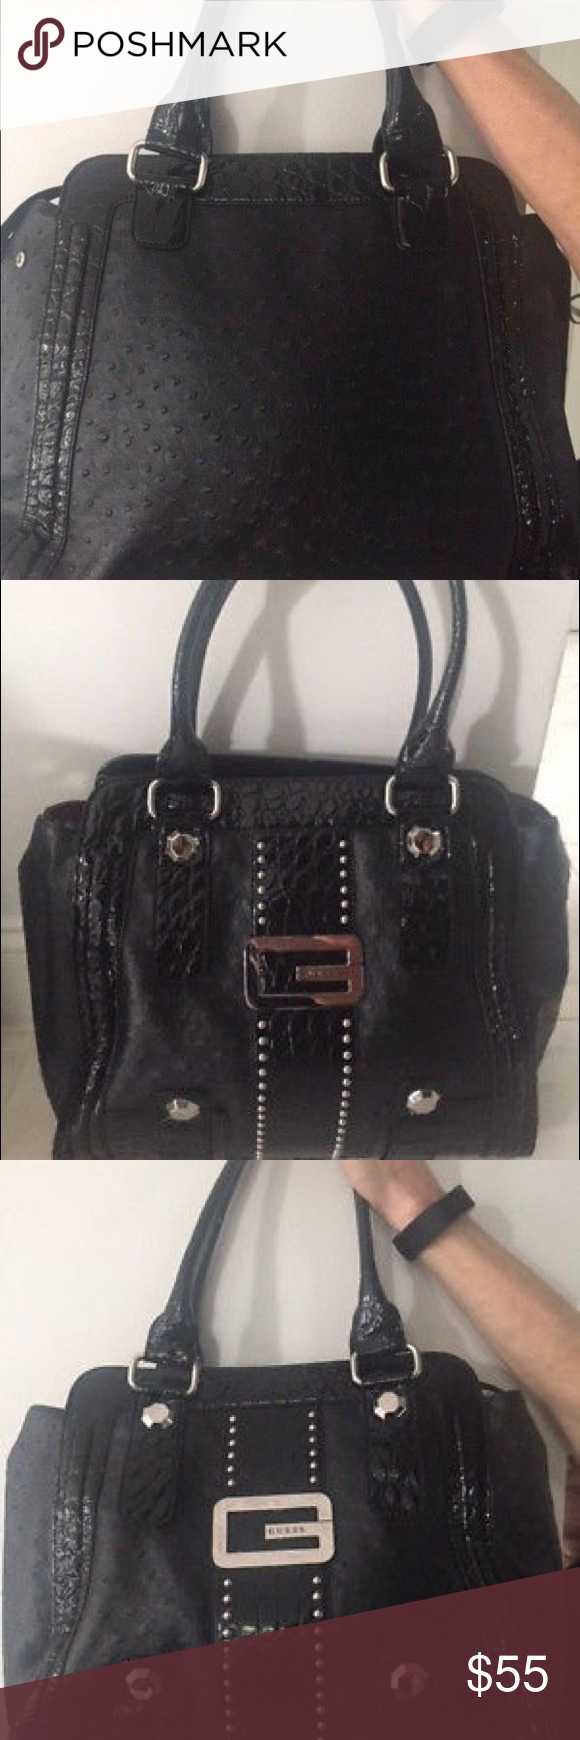 aef0fd2c090 GUESS Black Pocketbook Tote Bag (Exceptional) Up for sale is an absolutely  beautiful buy  Guess side purse ...